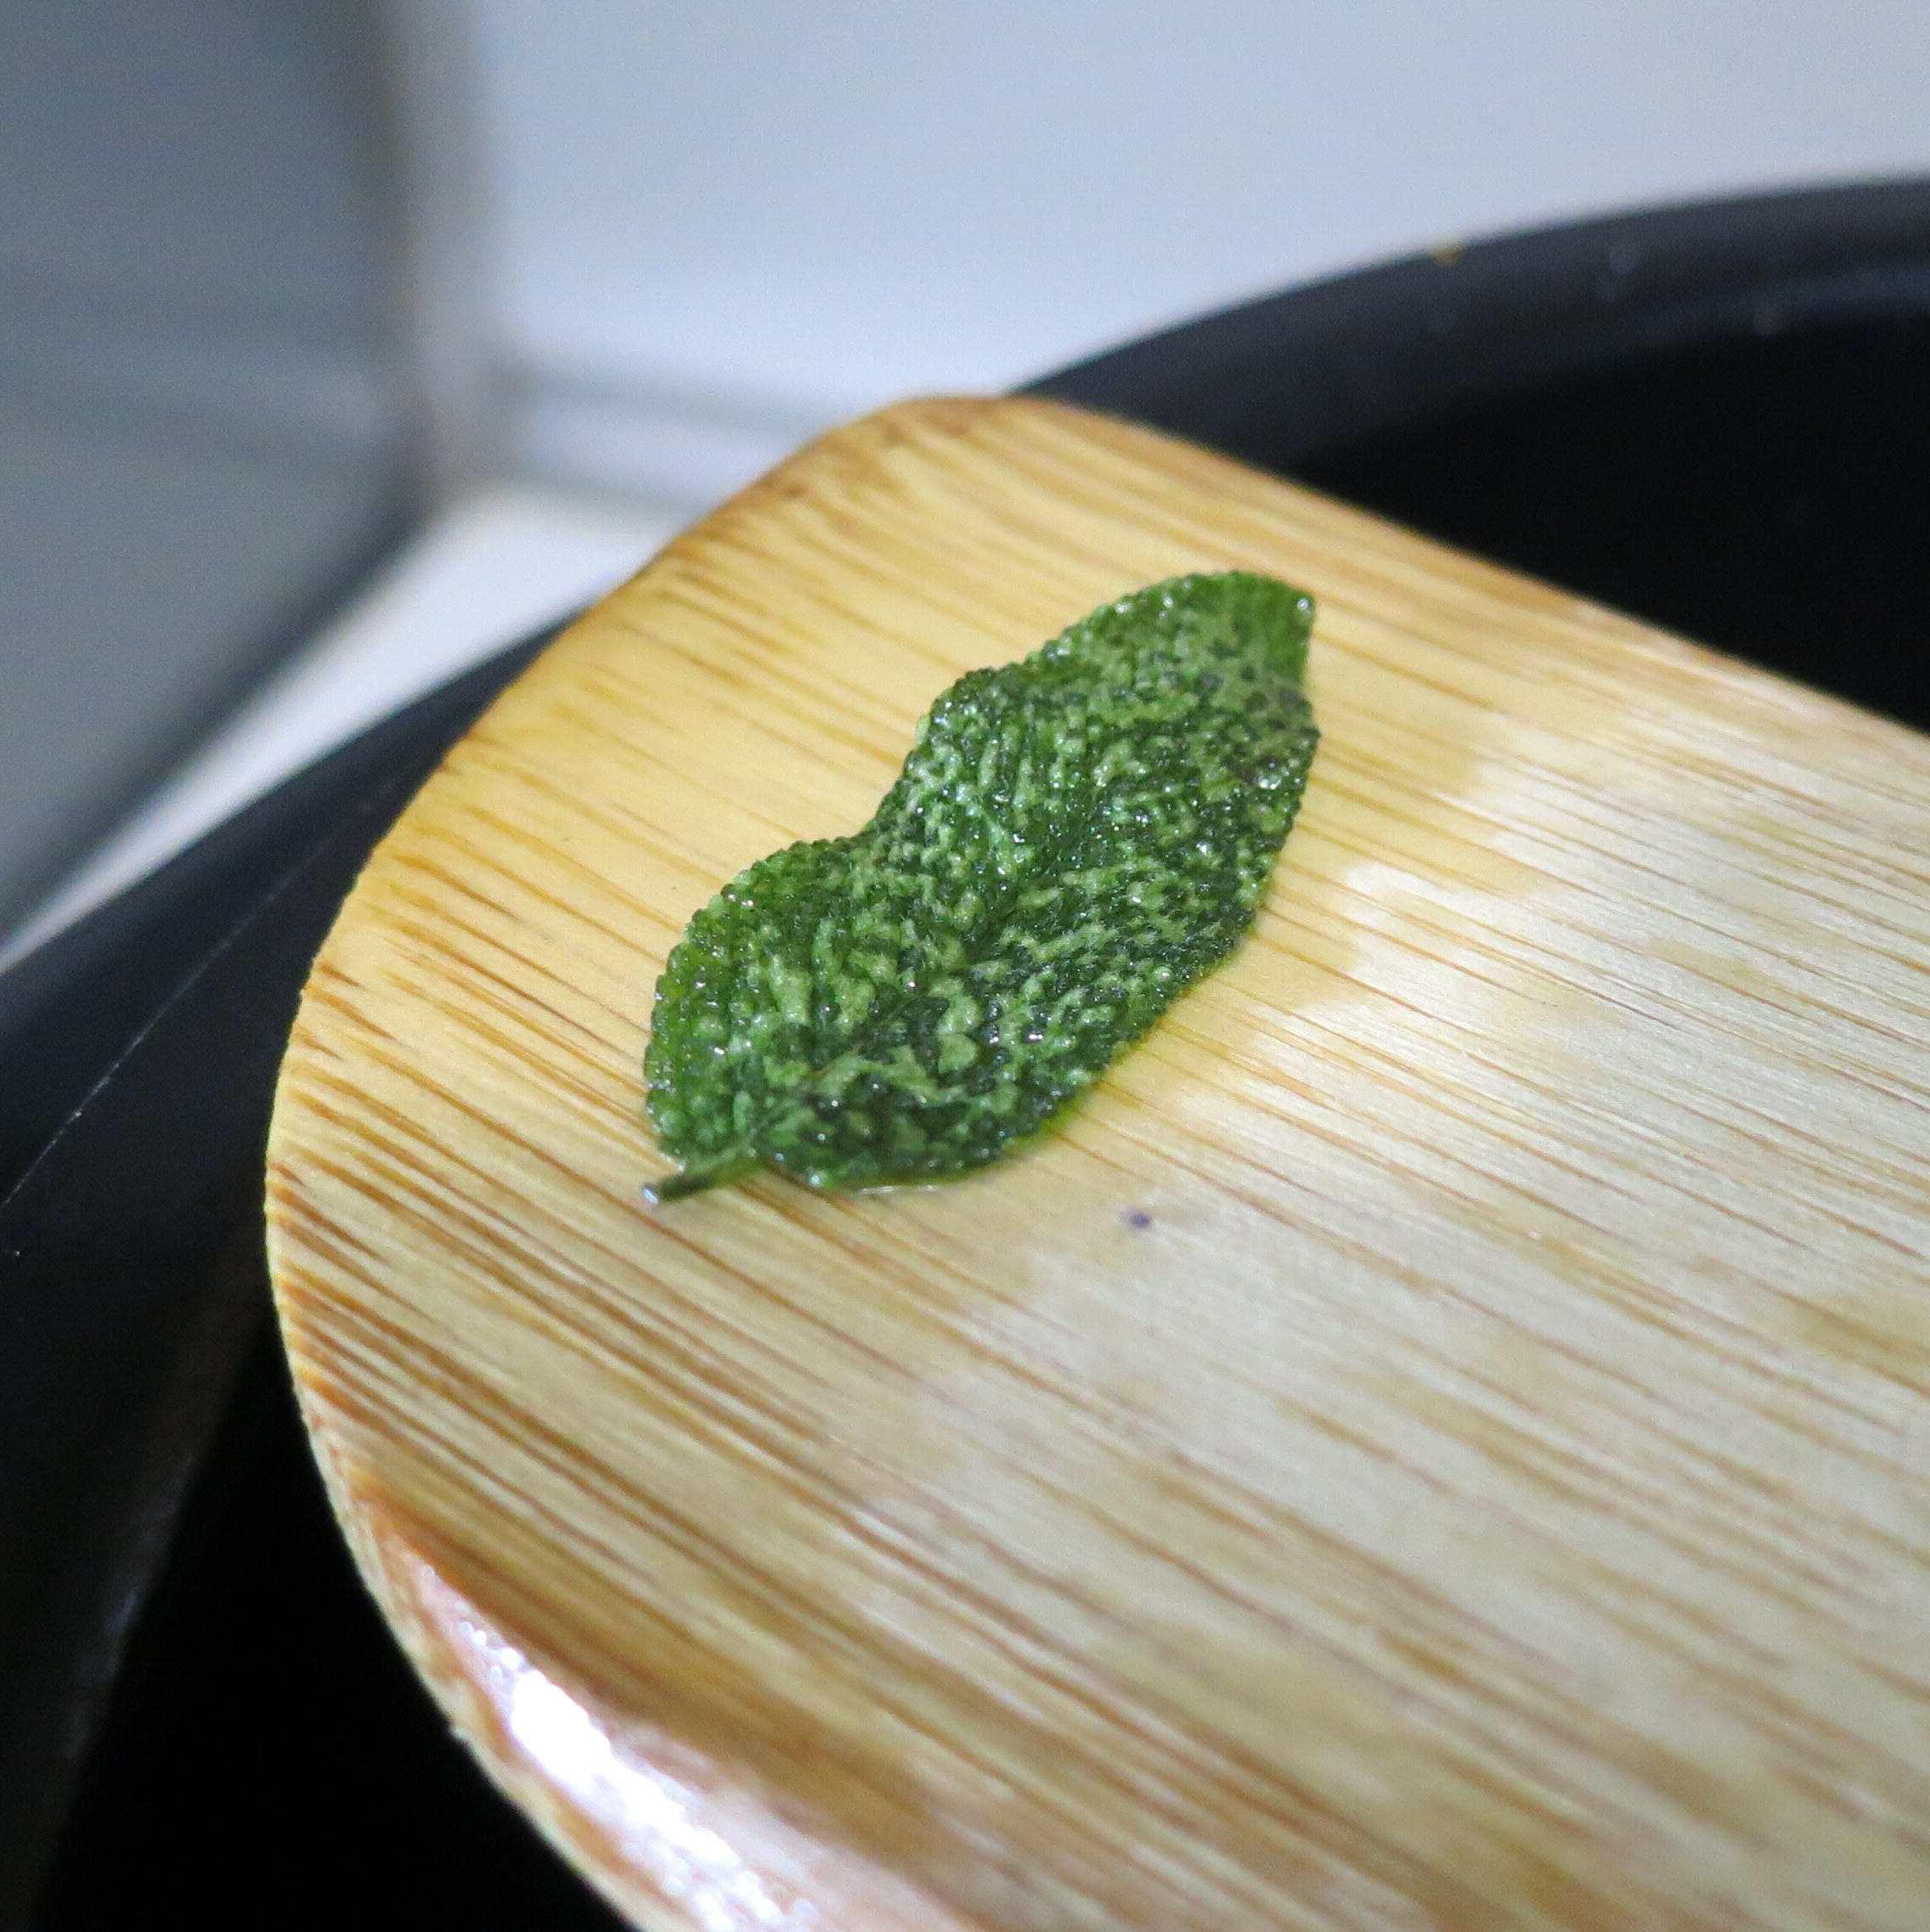 Polka-dotted leaves mean they are crispy.